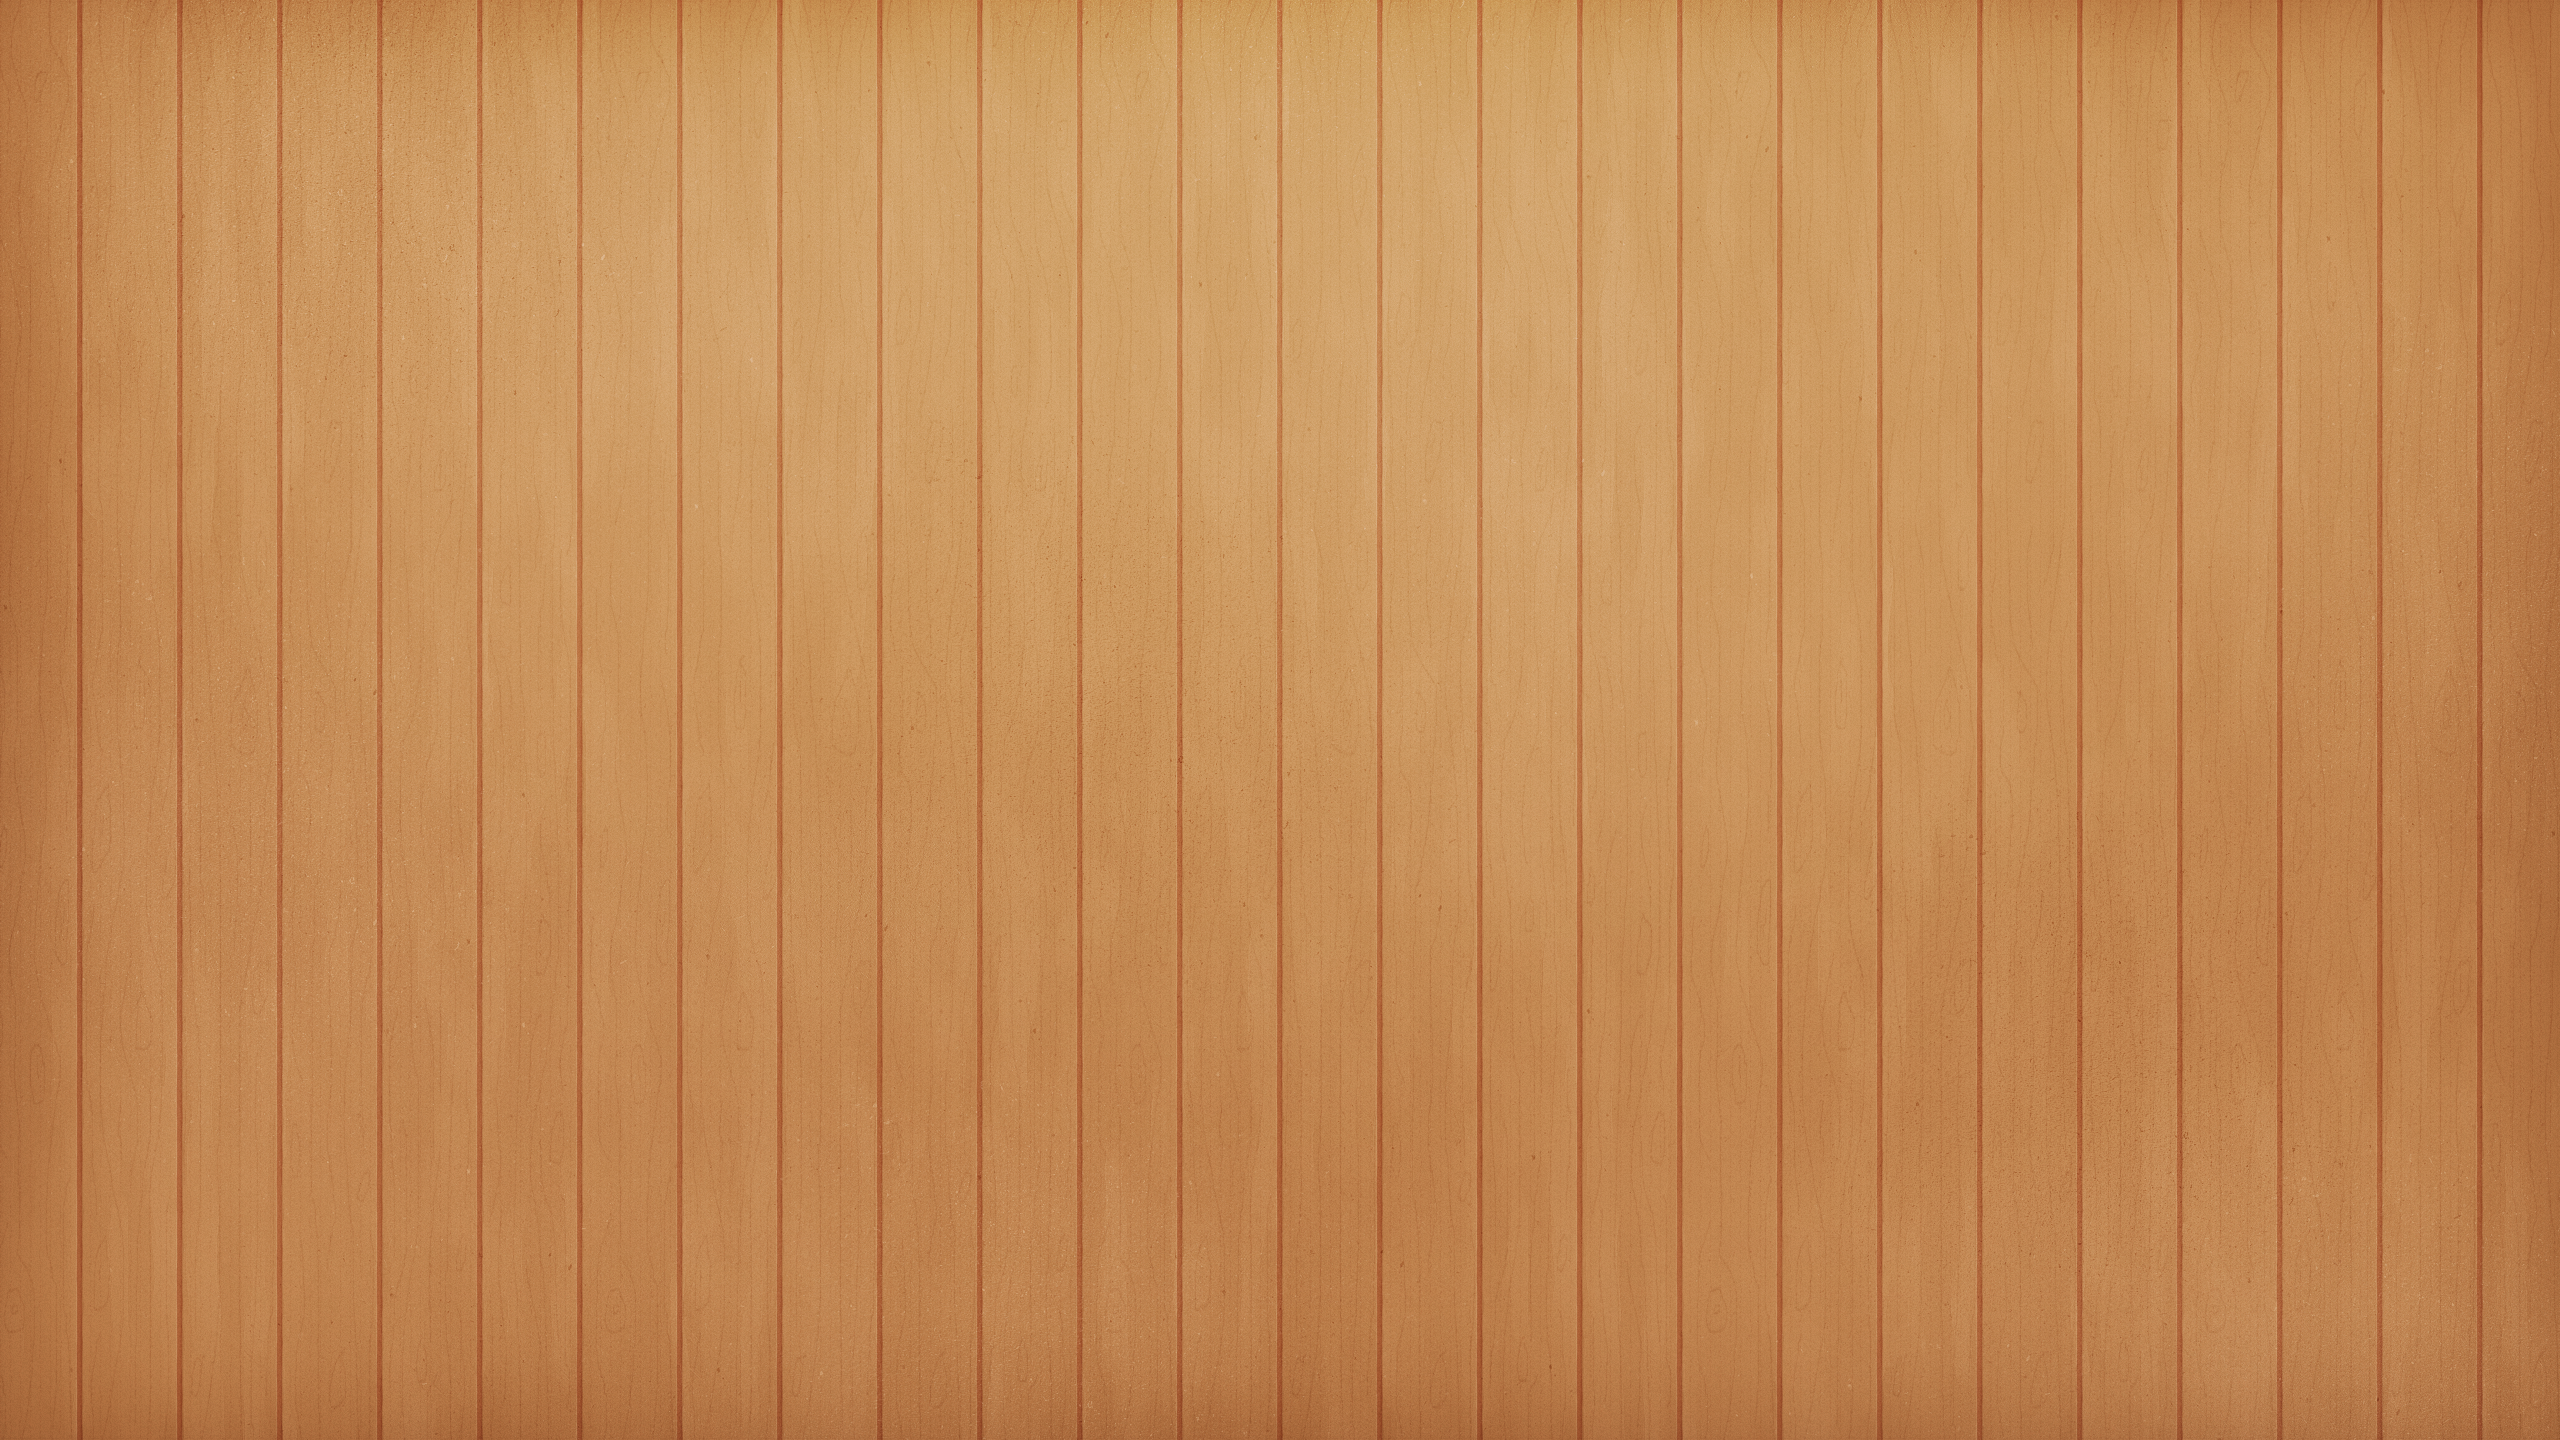 Get Wooden Texture Wallpapers Images